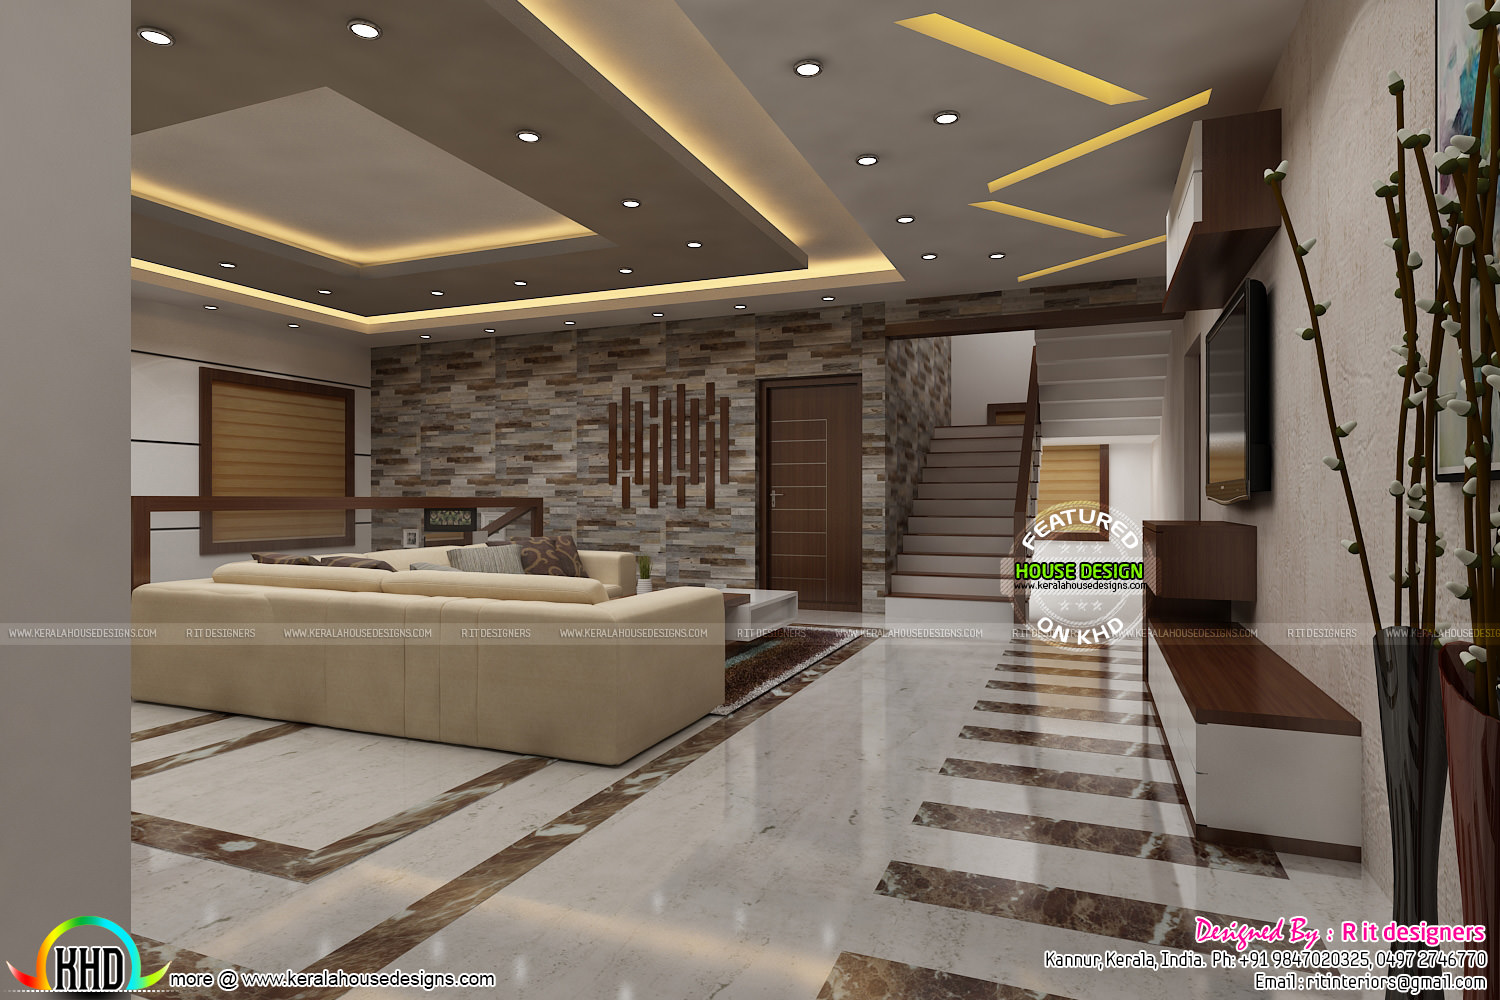 Most modern kerala living room interior kerala home Images of home interior